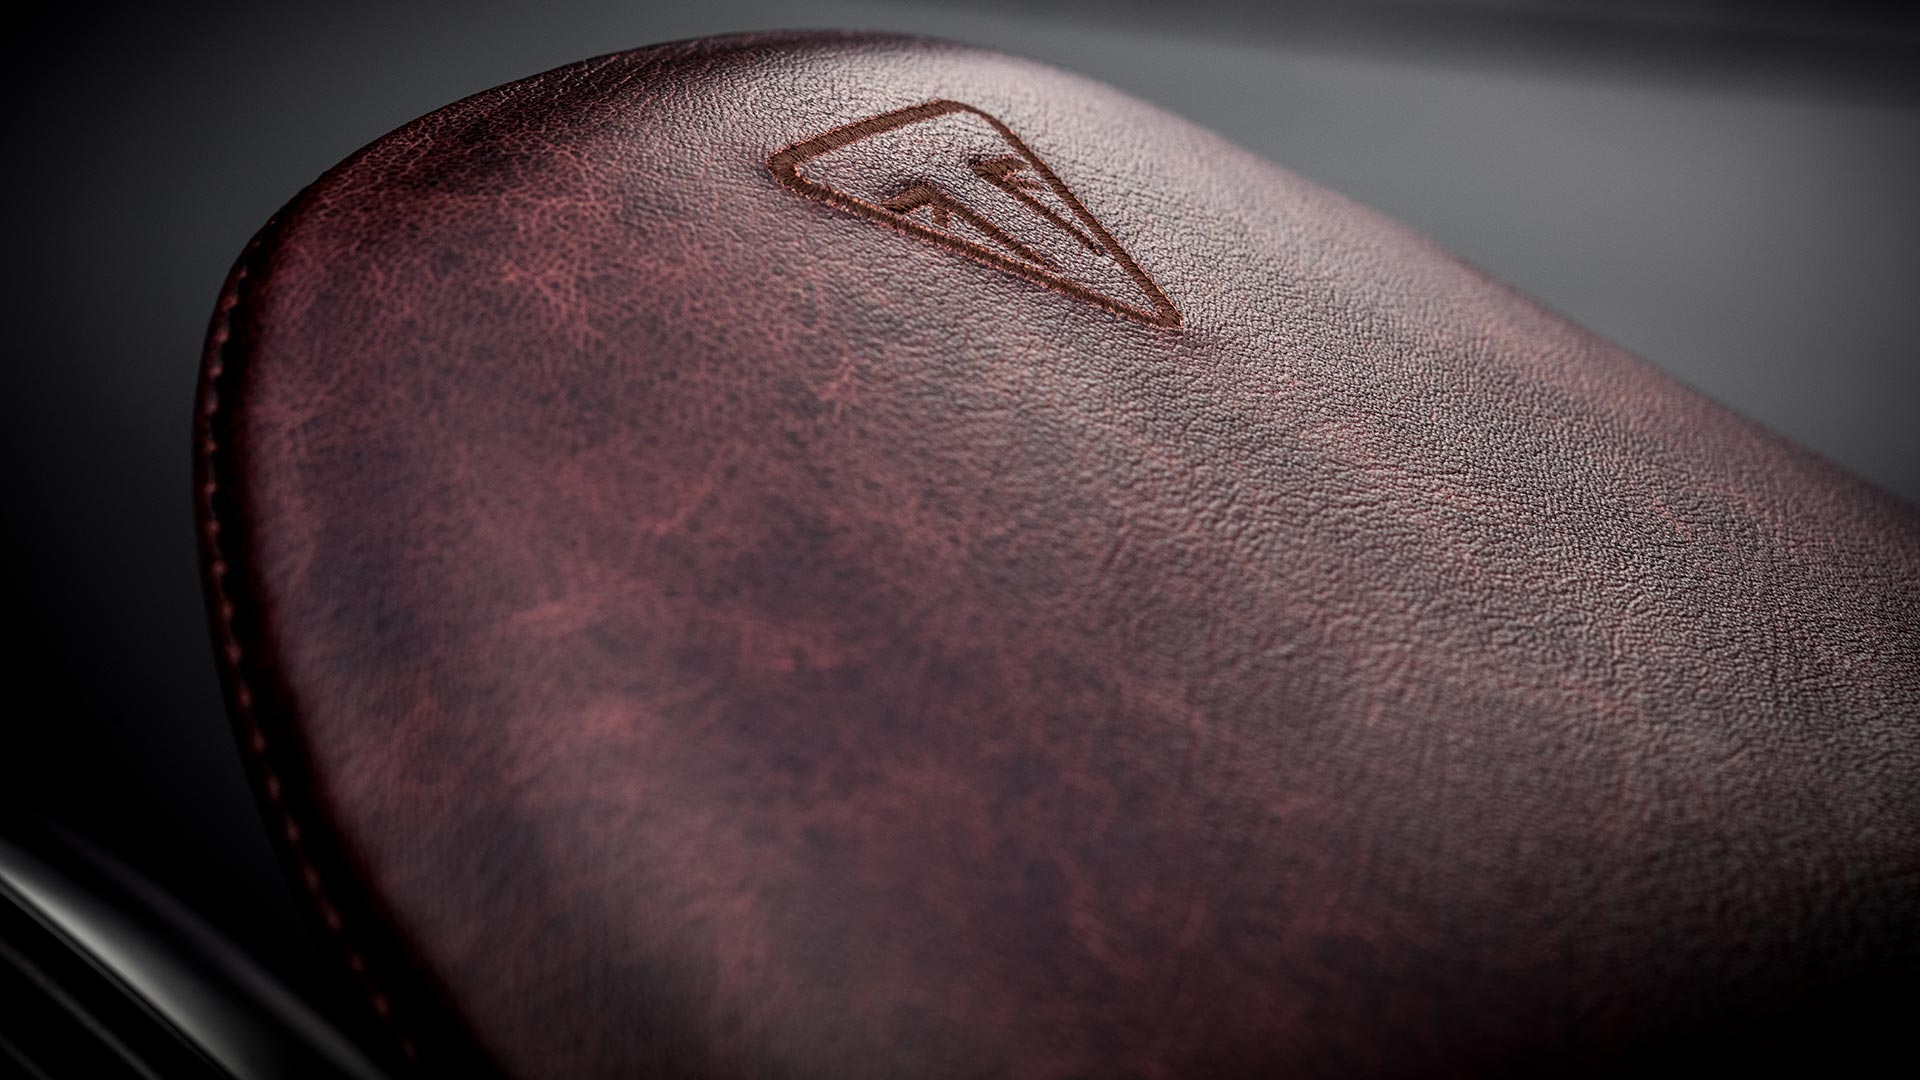 Close-up shot of the Triumph Bobber TFC's sculpted leather seat